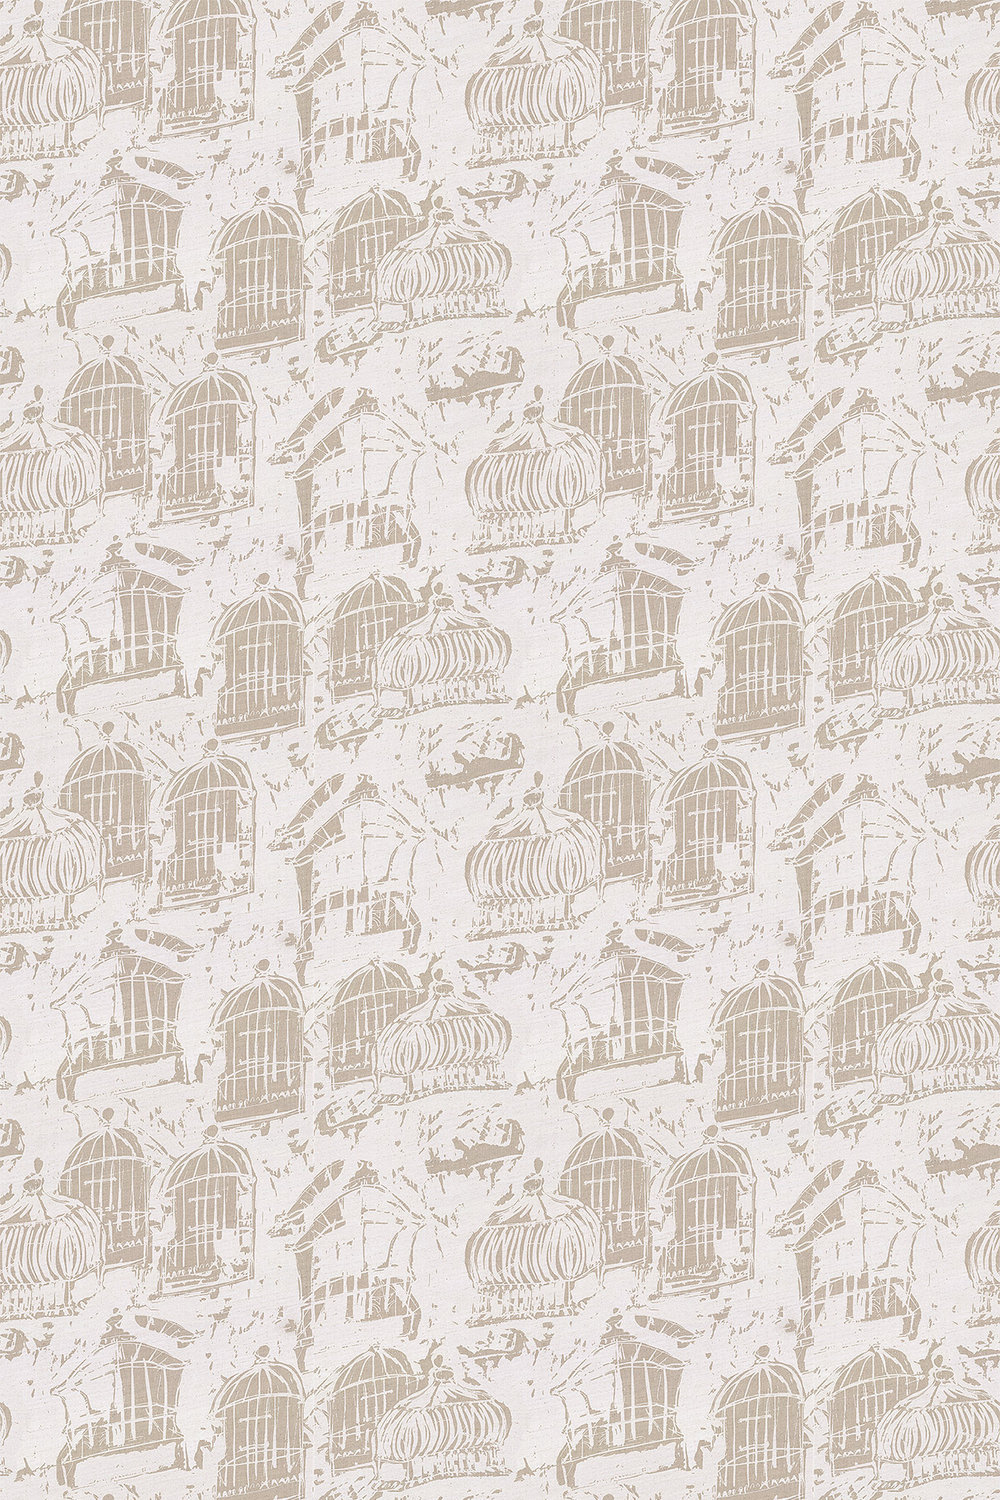 Belynda Sharples Linen Union Birdcage 01 Neutral Fabric - Product code: BS-LU-BC-01